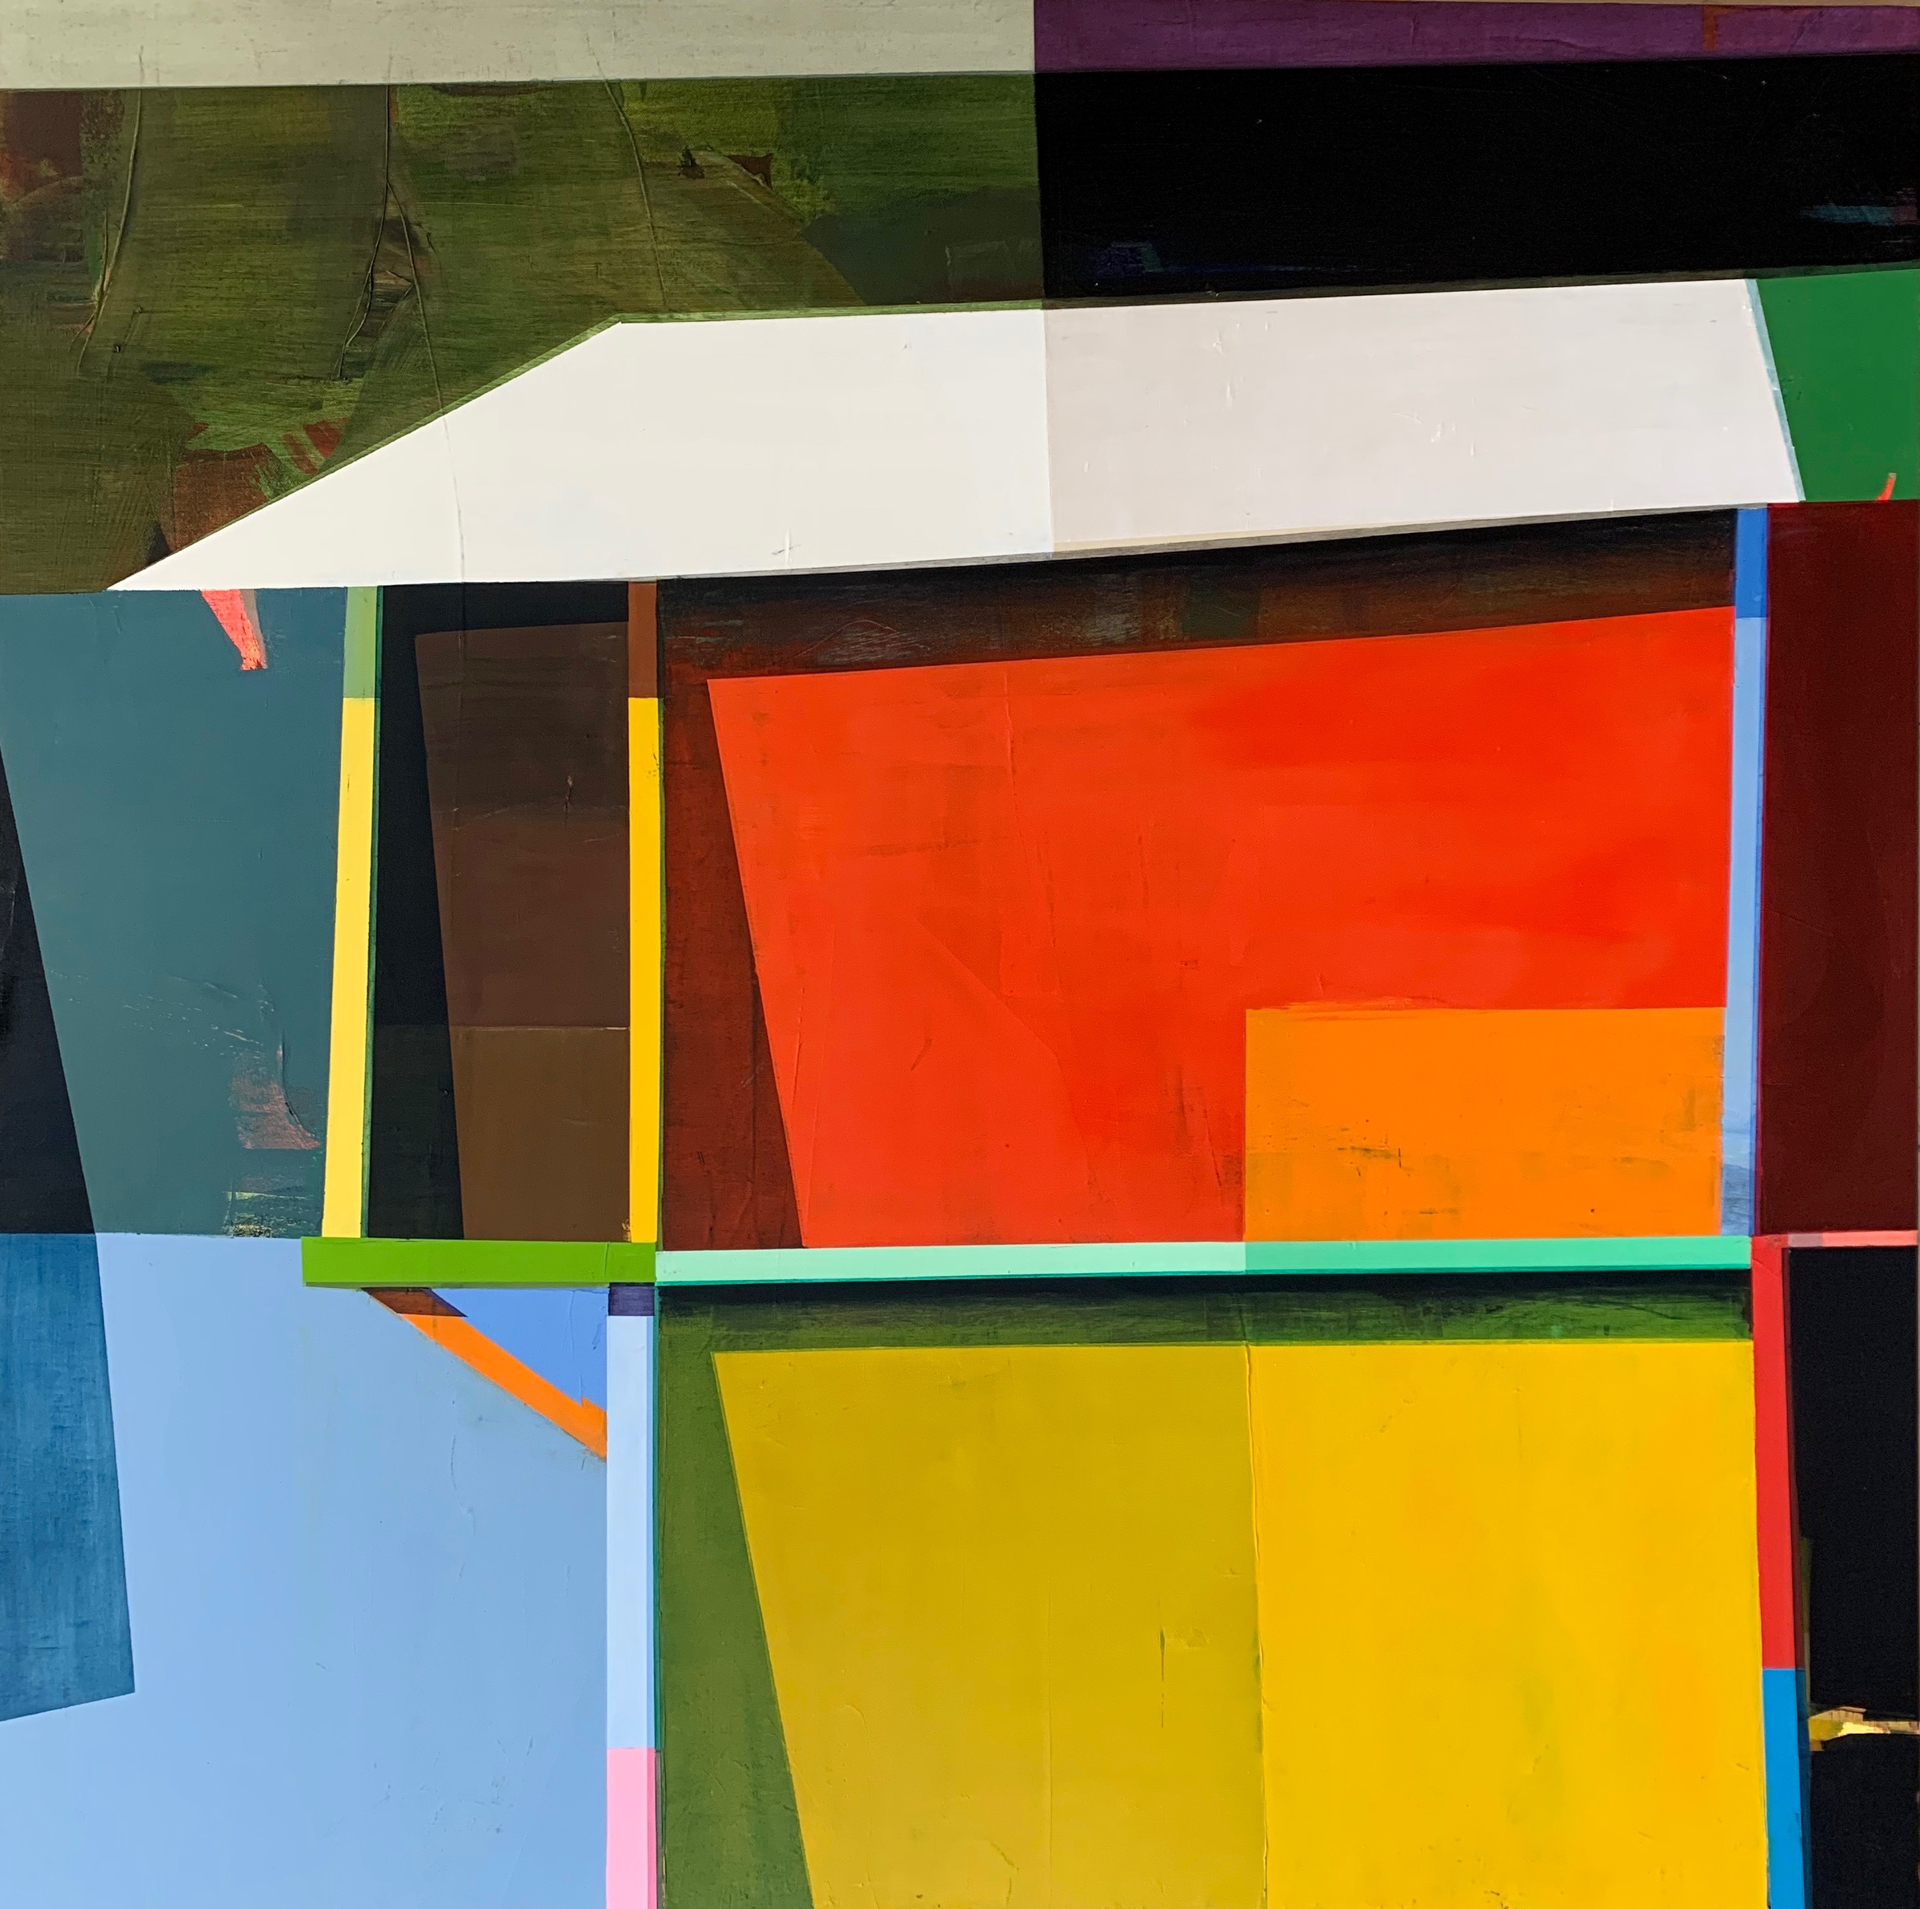 A Colorful House #8 by Siddharth Parasnis